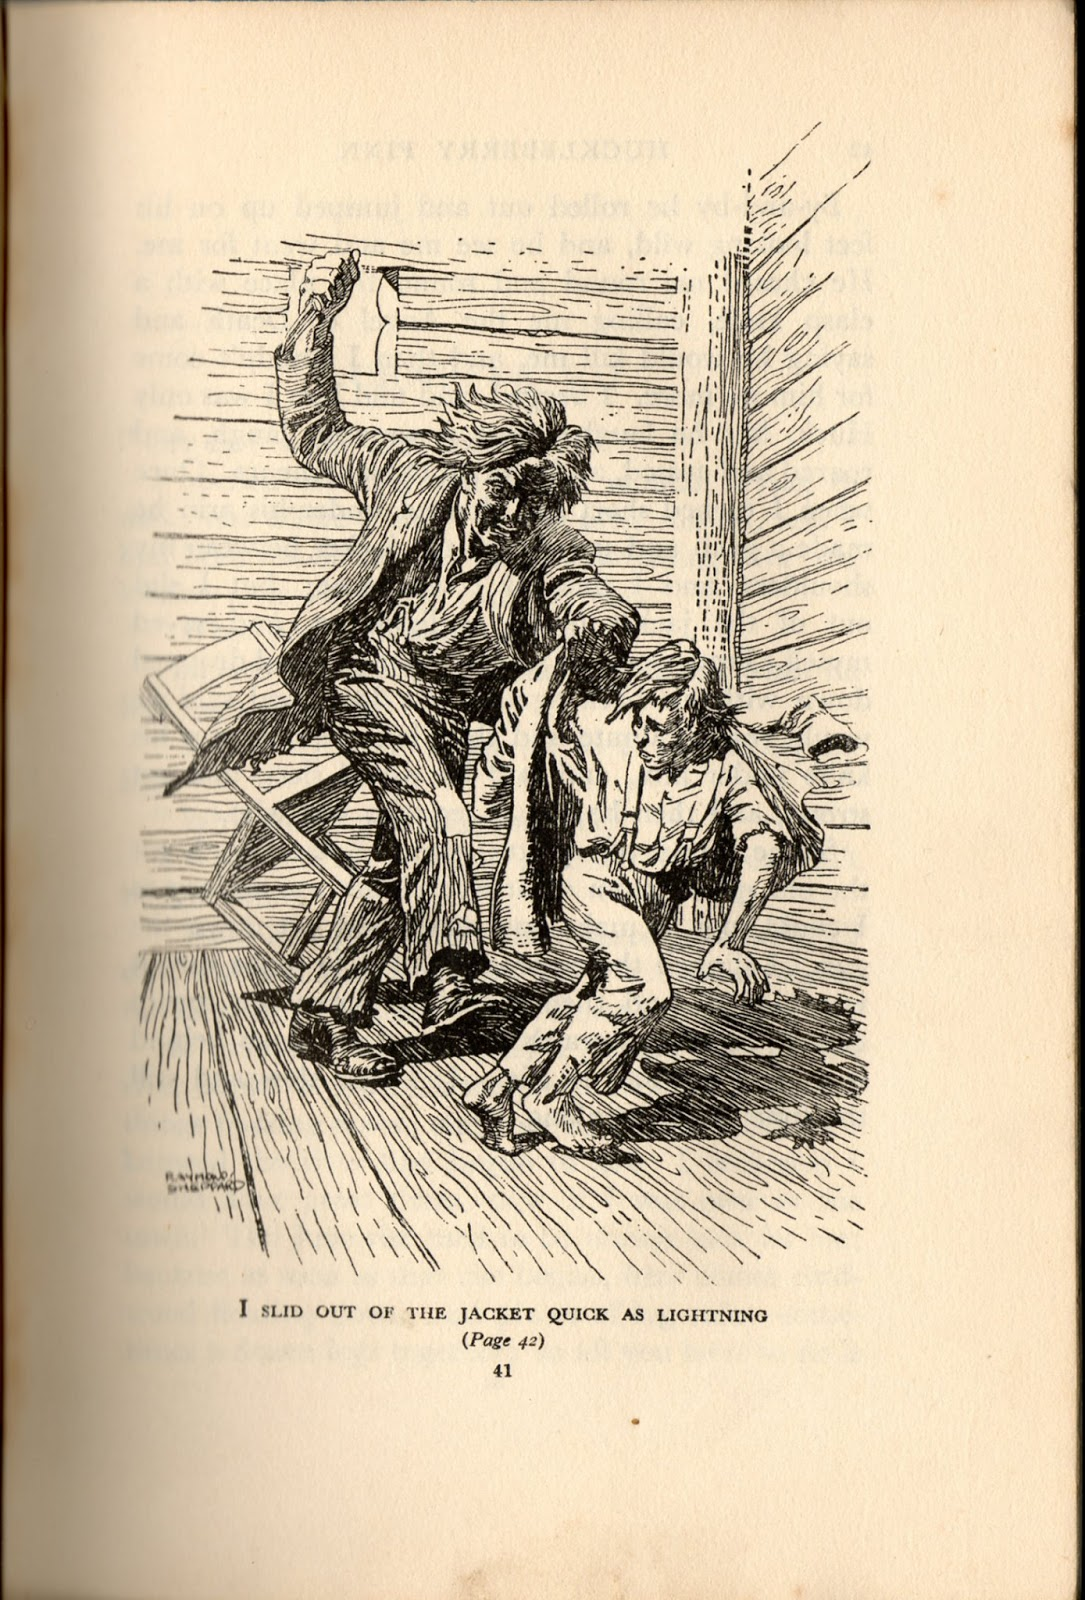 the escape from society in the adventures of huckleberry finn by mark twain Mark twain described the major theme of the adventures of huckleberry finn as a sound heart and a deformed conscience come into collision, and conscience suffers defeat helping a slave to escape.